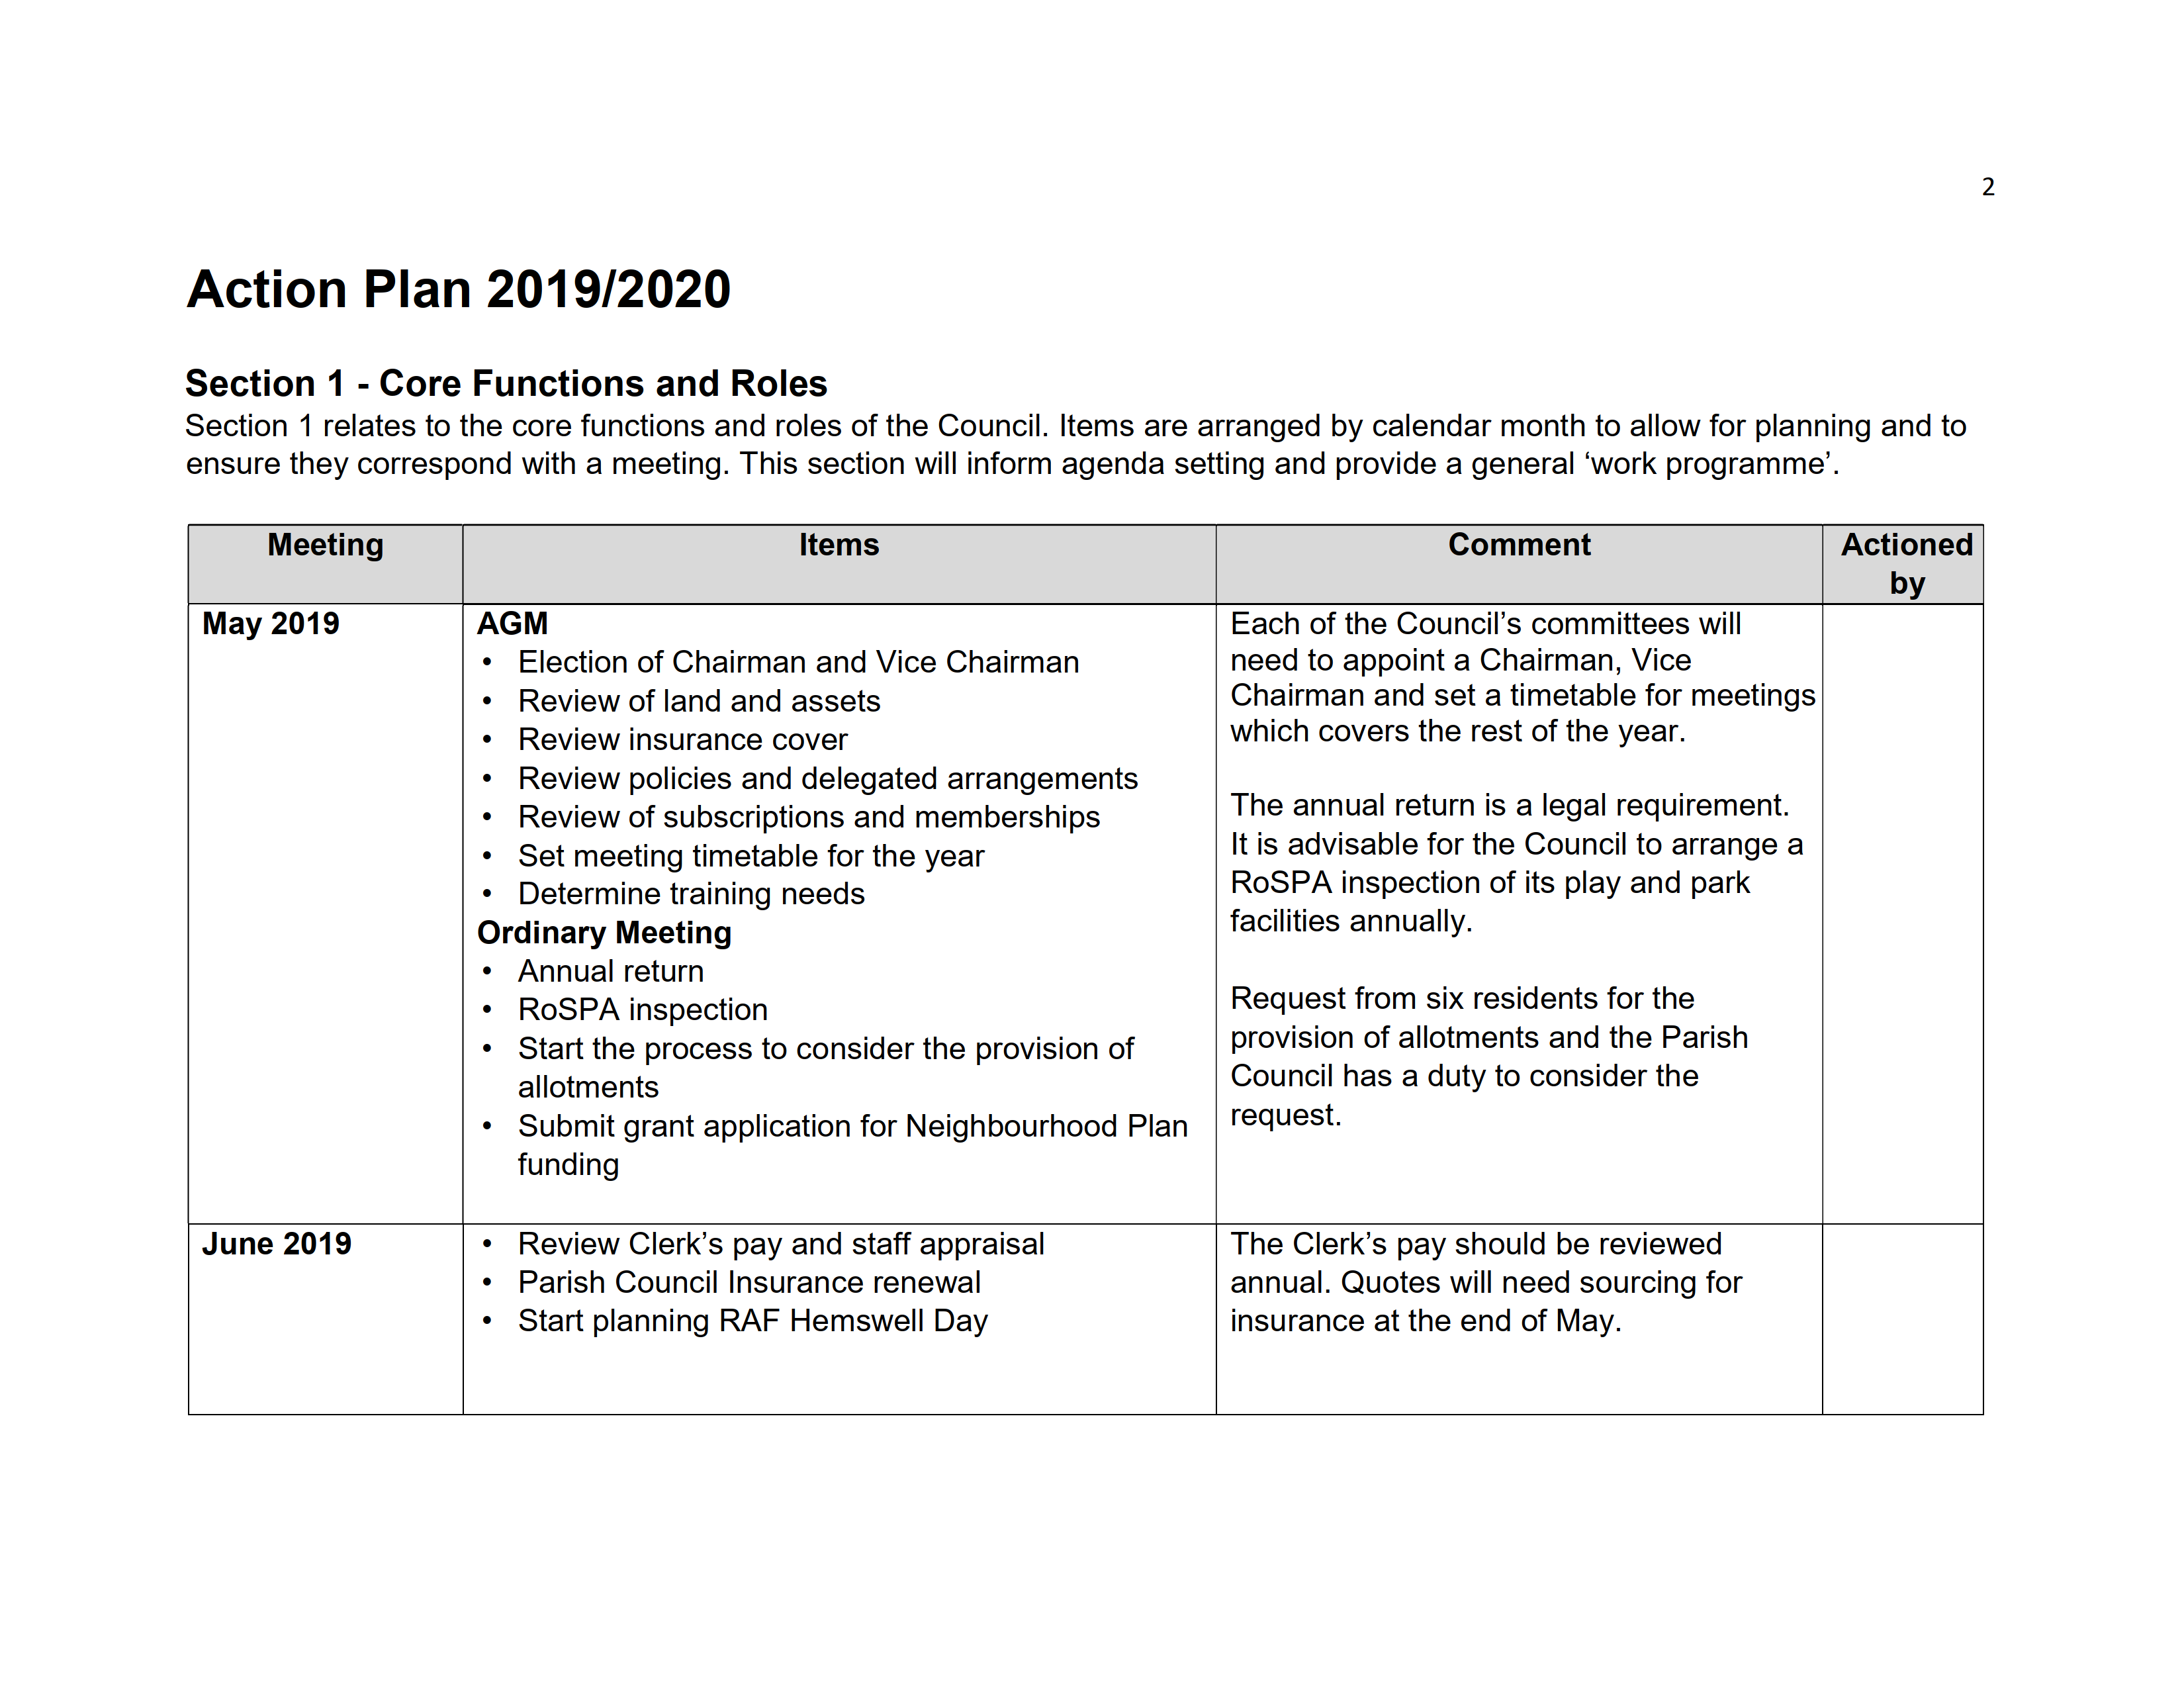 1920HCPC._Action_Plan4.png